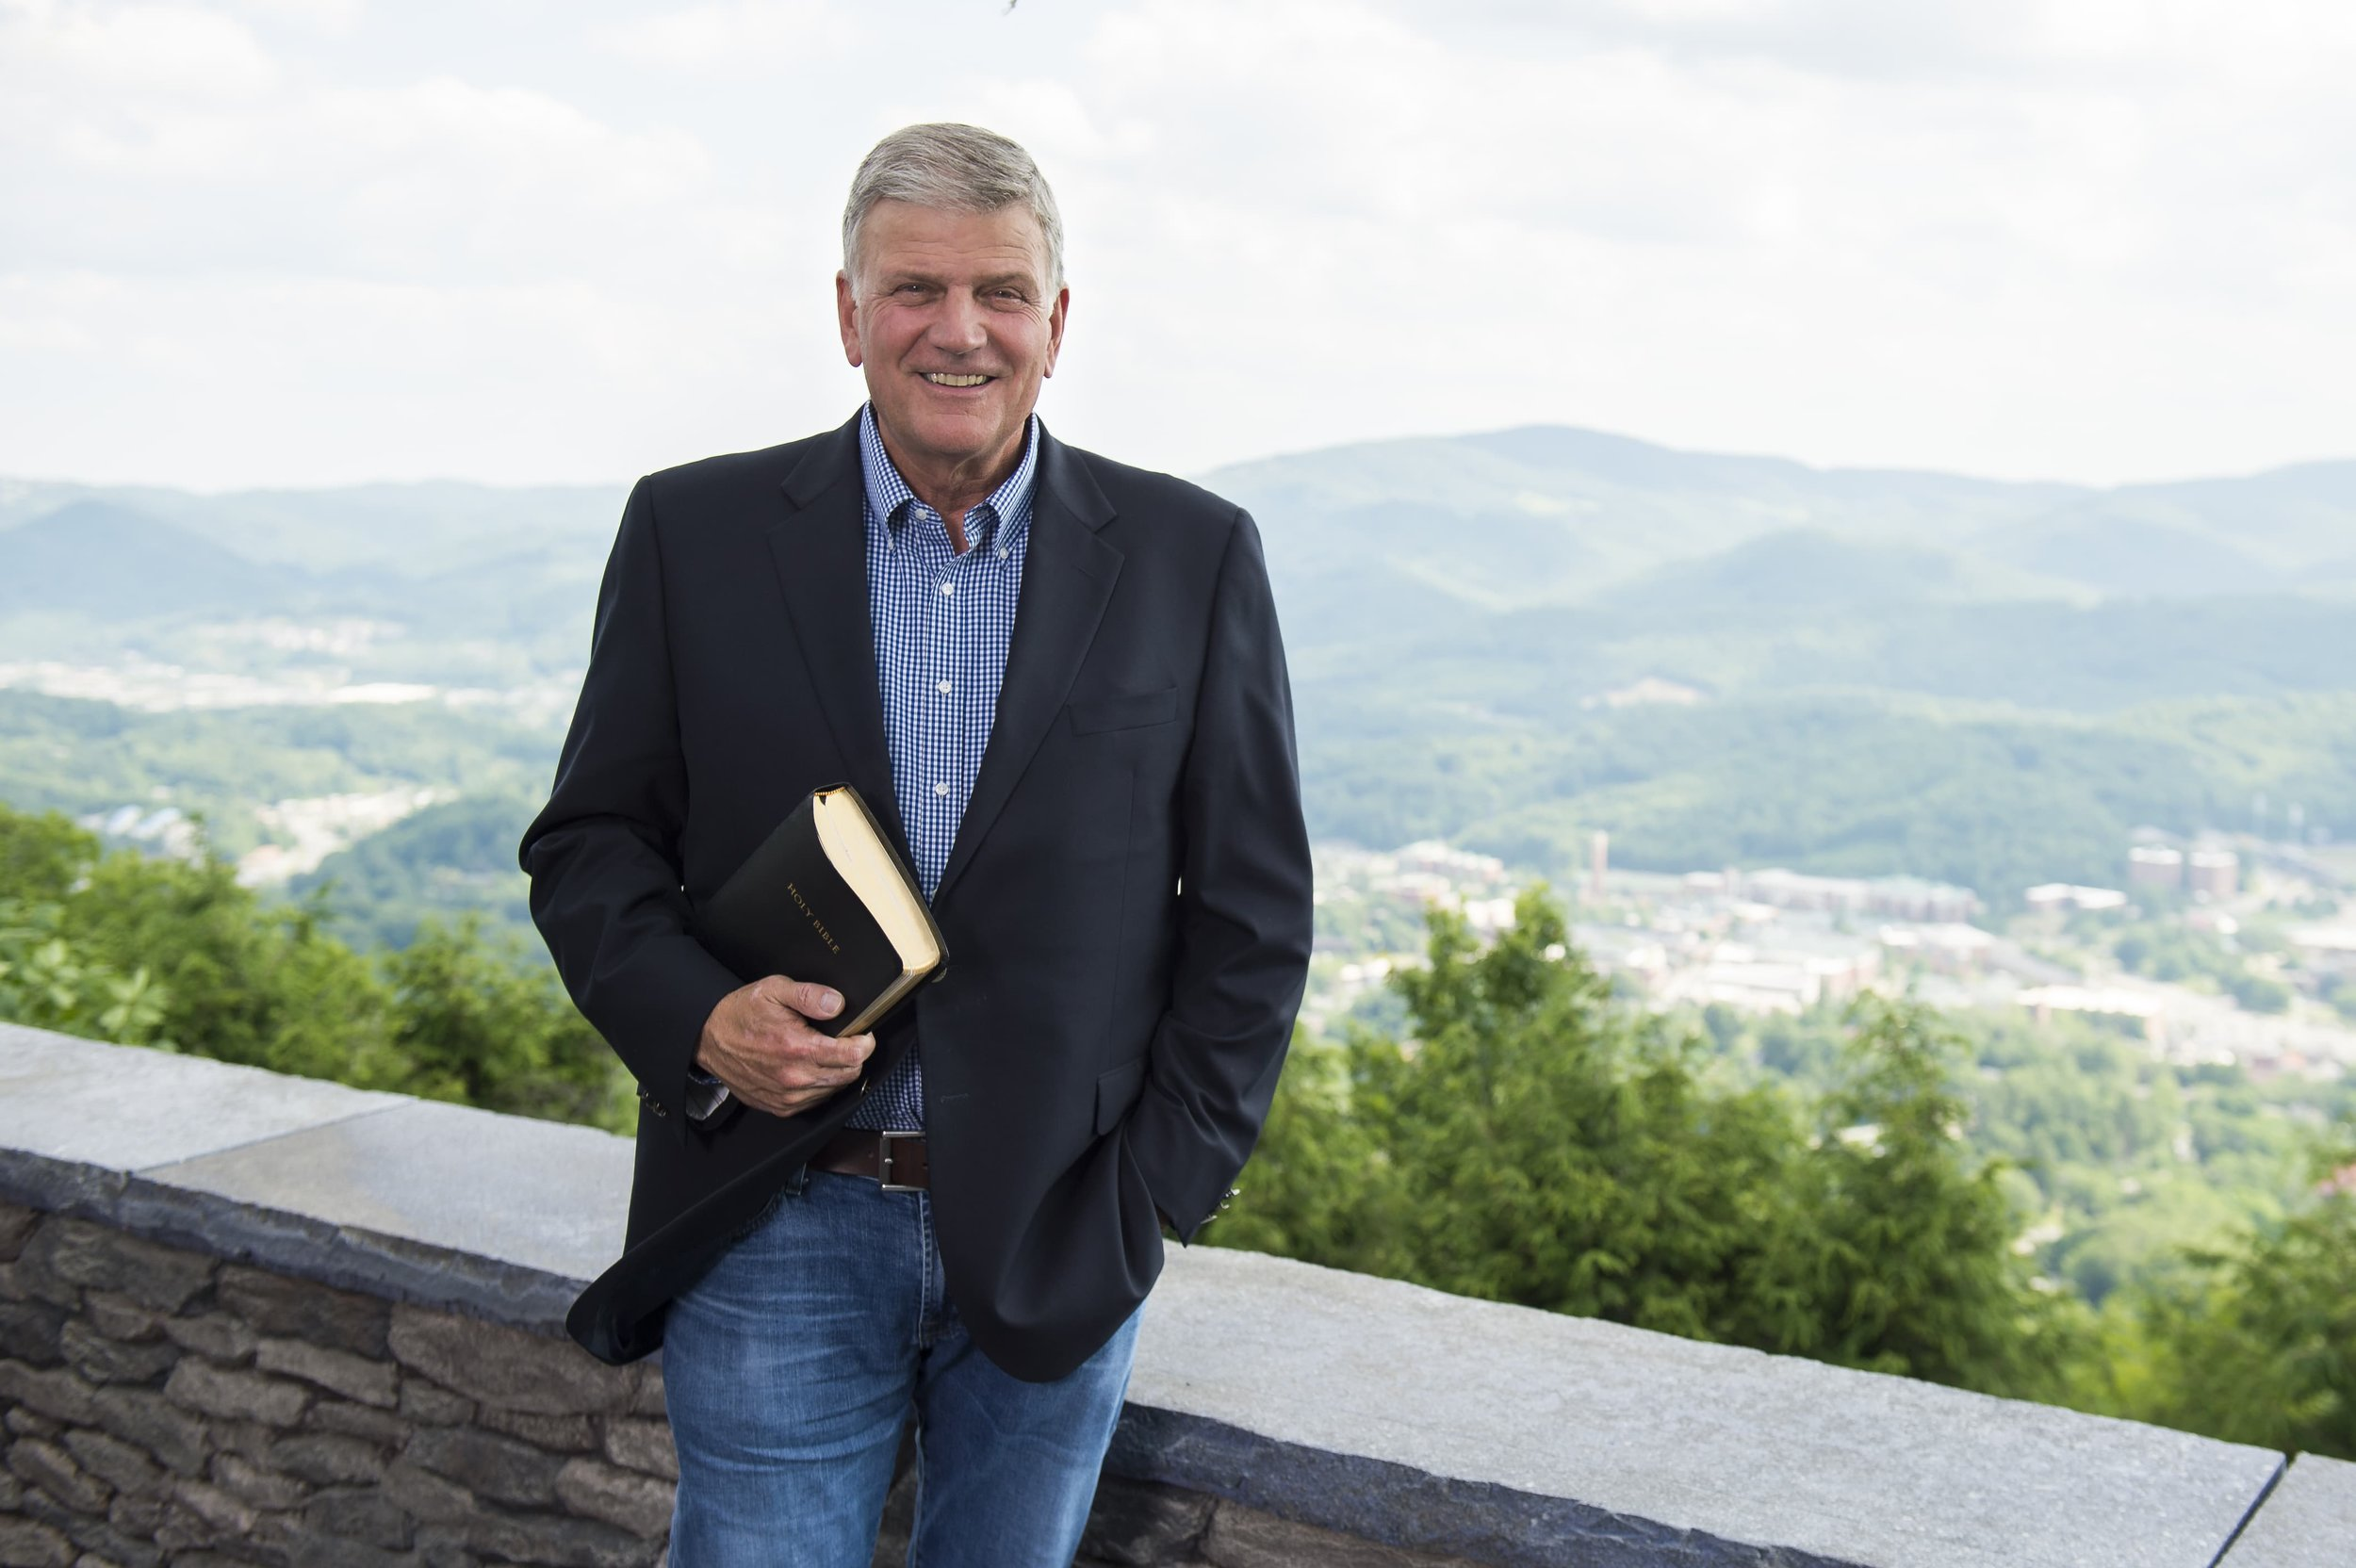 Franklin Graham, president of Samaritan's Purse and the Billy Graham Evangelistic Association. Photo courtesy of Samaritan's Purse.